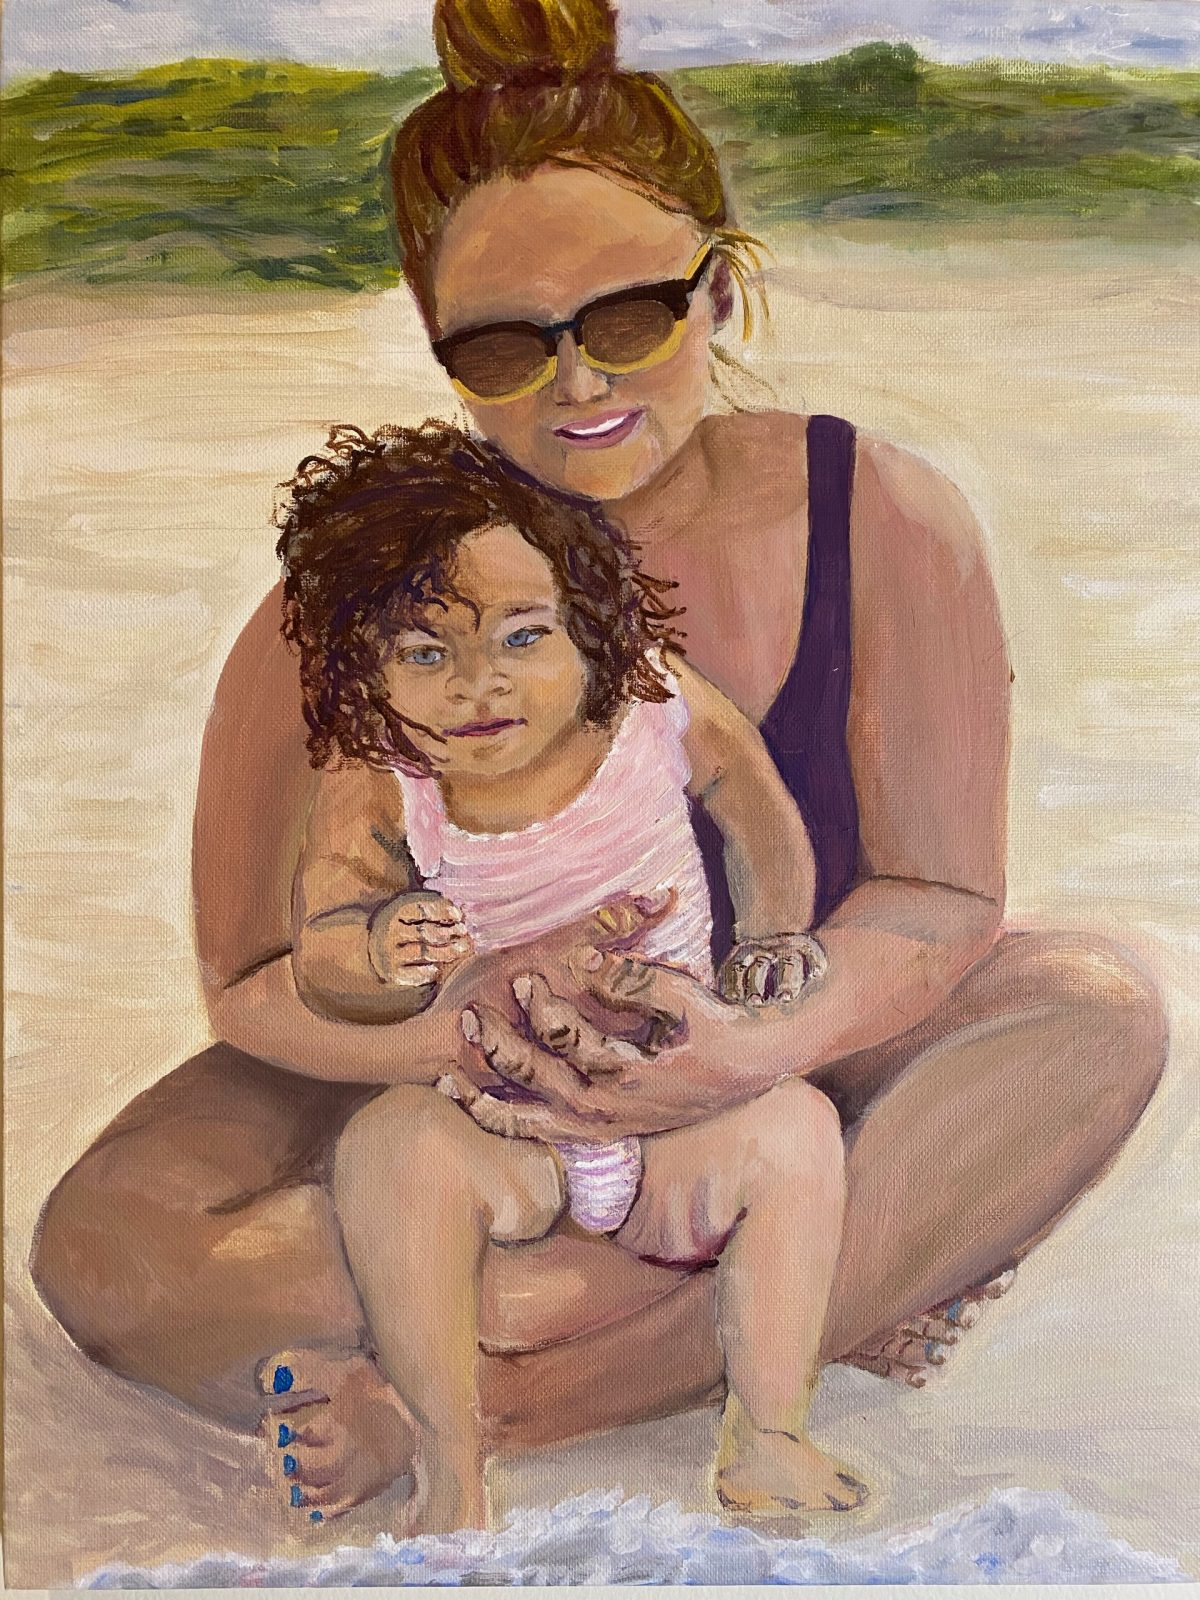 A painting of a woman seated and holding a child in her lap on the beach